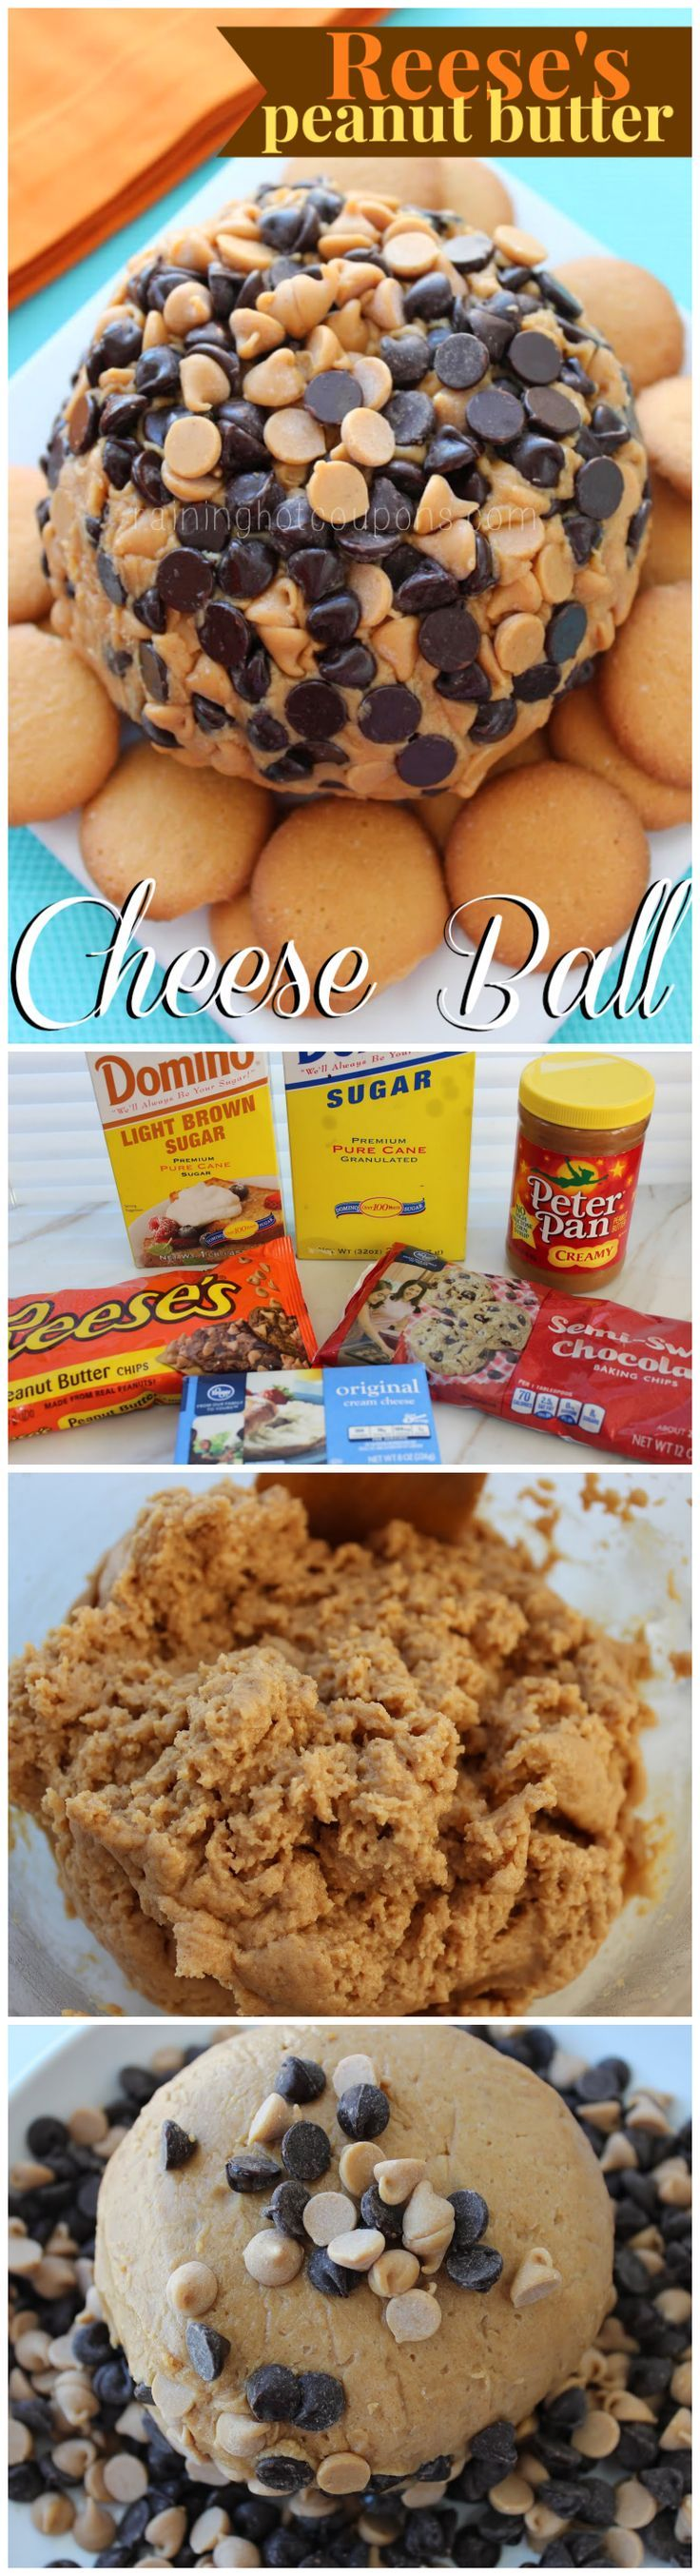 Reese's Peanut Butter Cheese Ball